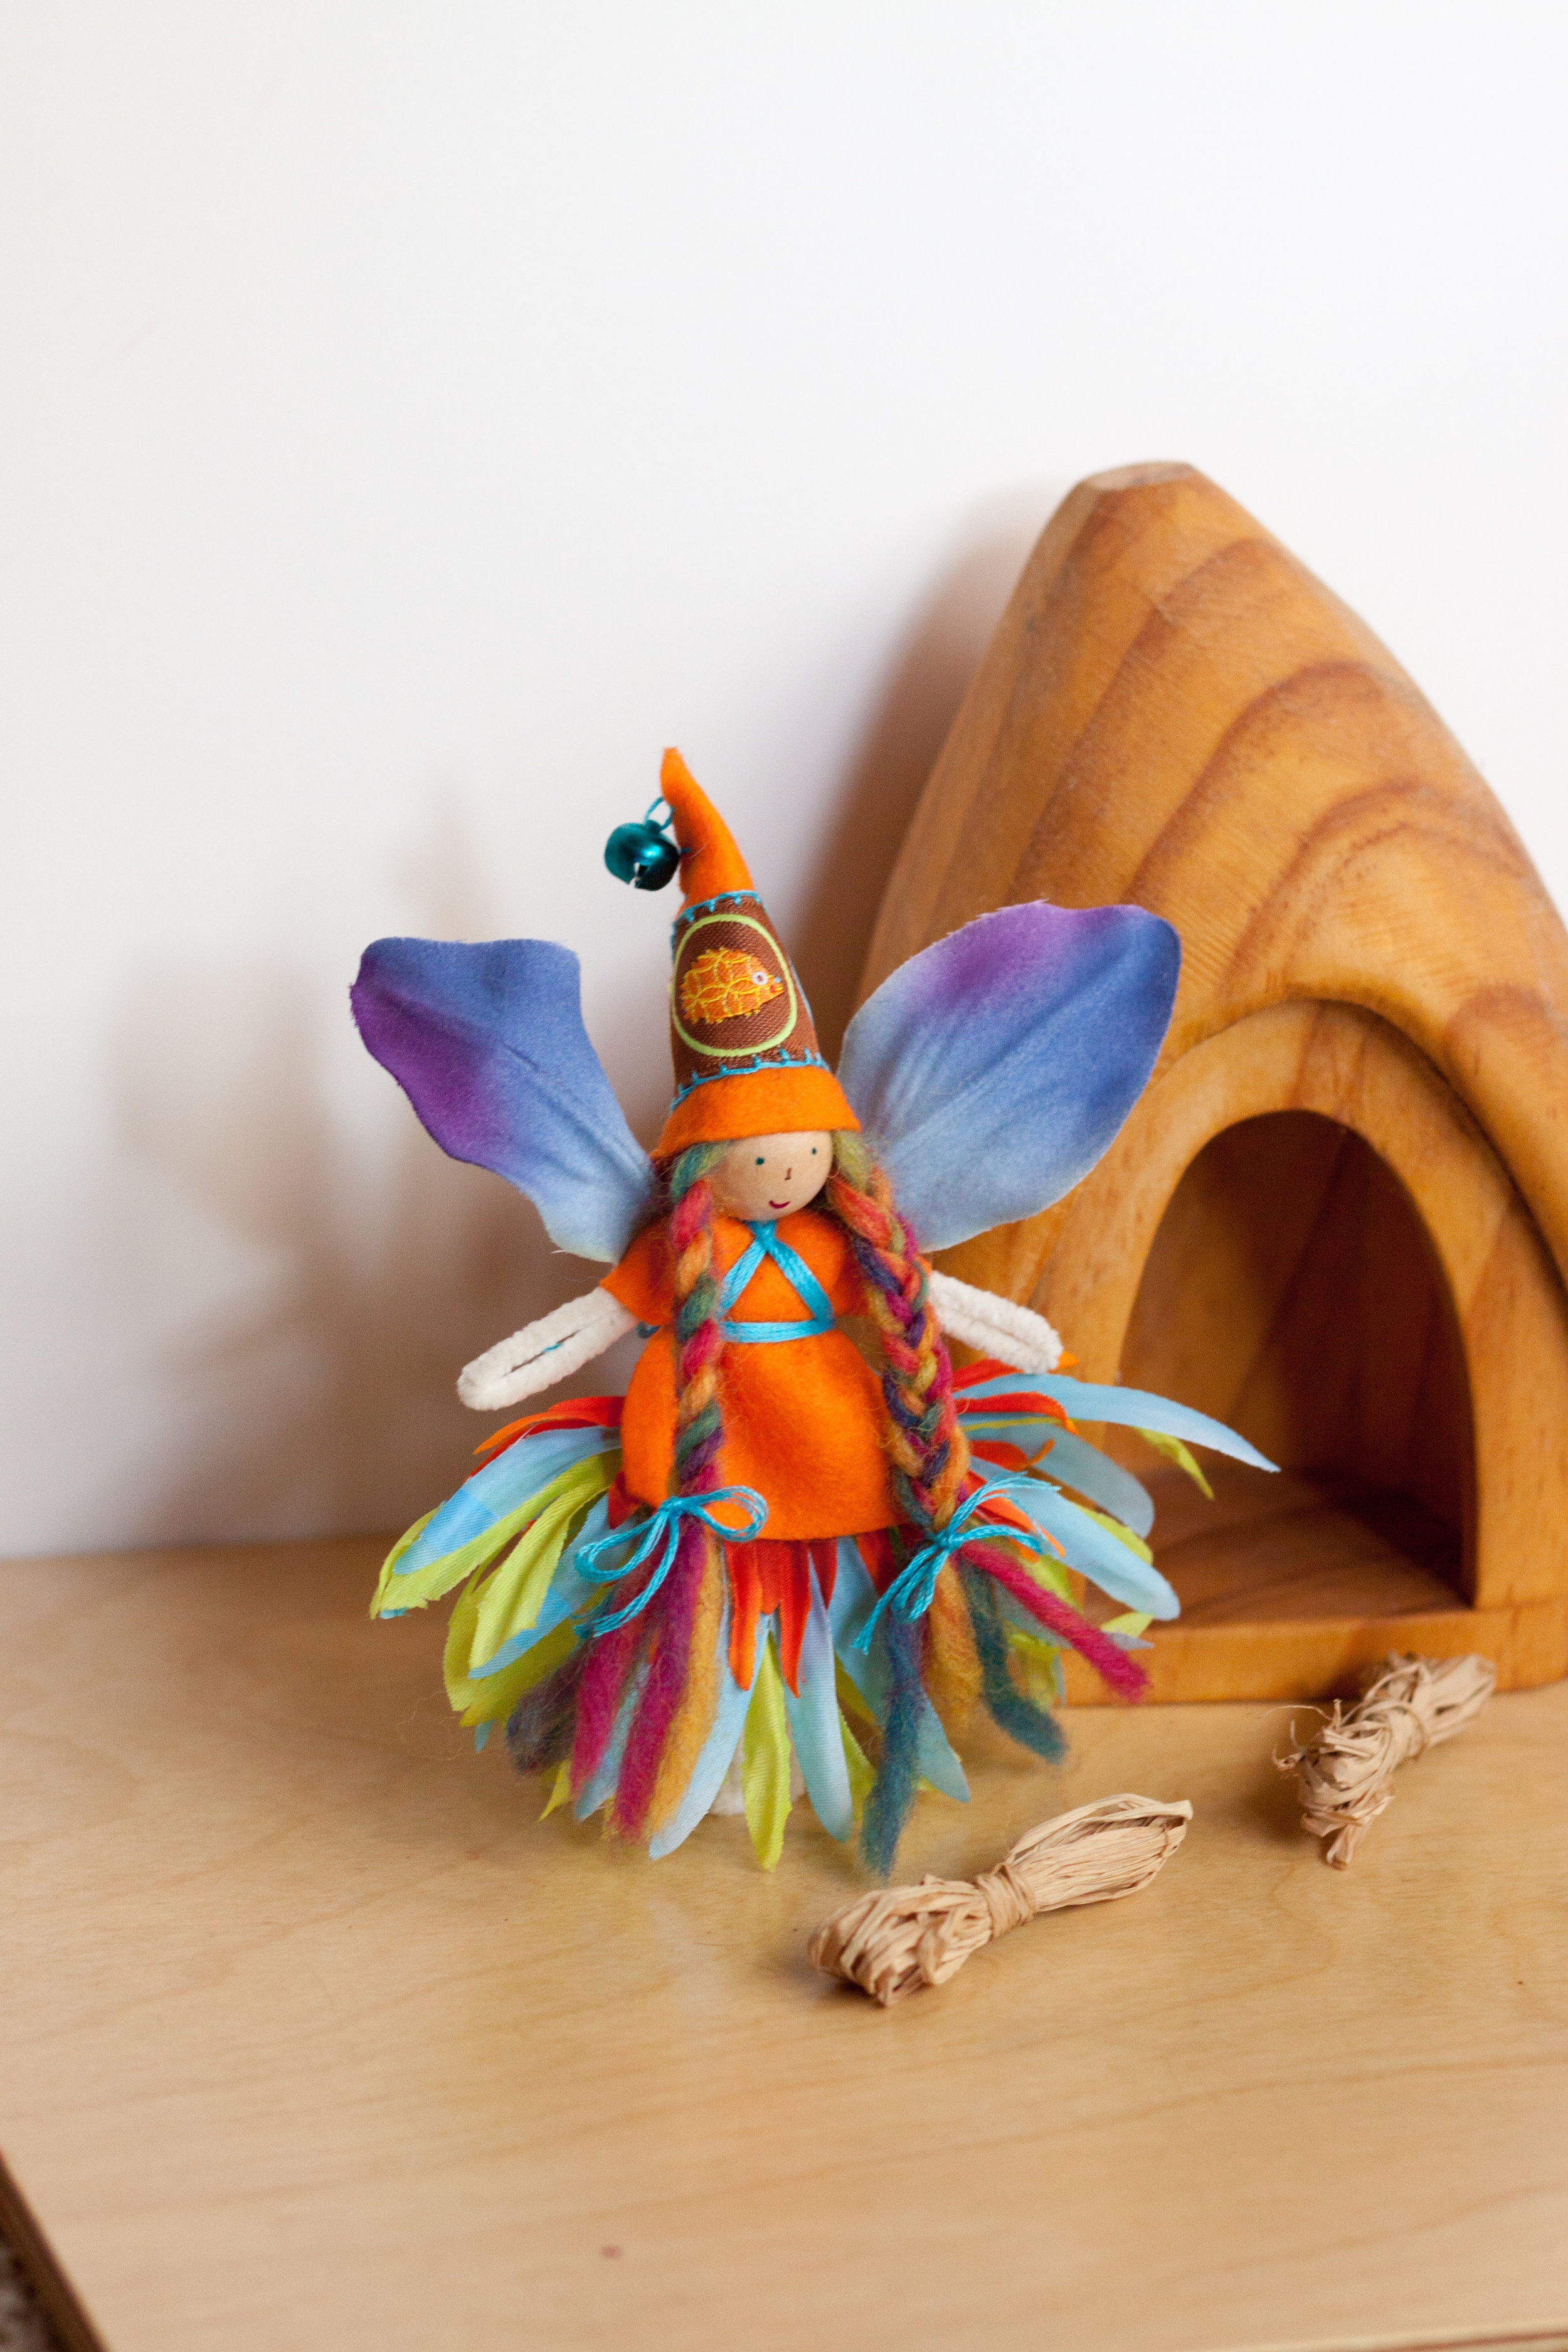 Autumn crafts in the Forest Fairy Crafts books by Lenka Vodicka-Paredes and Asia Curry. Handwork and enchanted ideas for children of all ages.